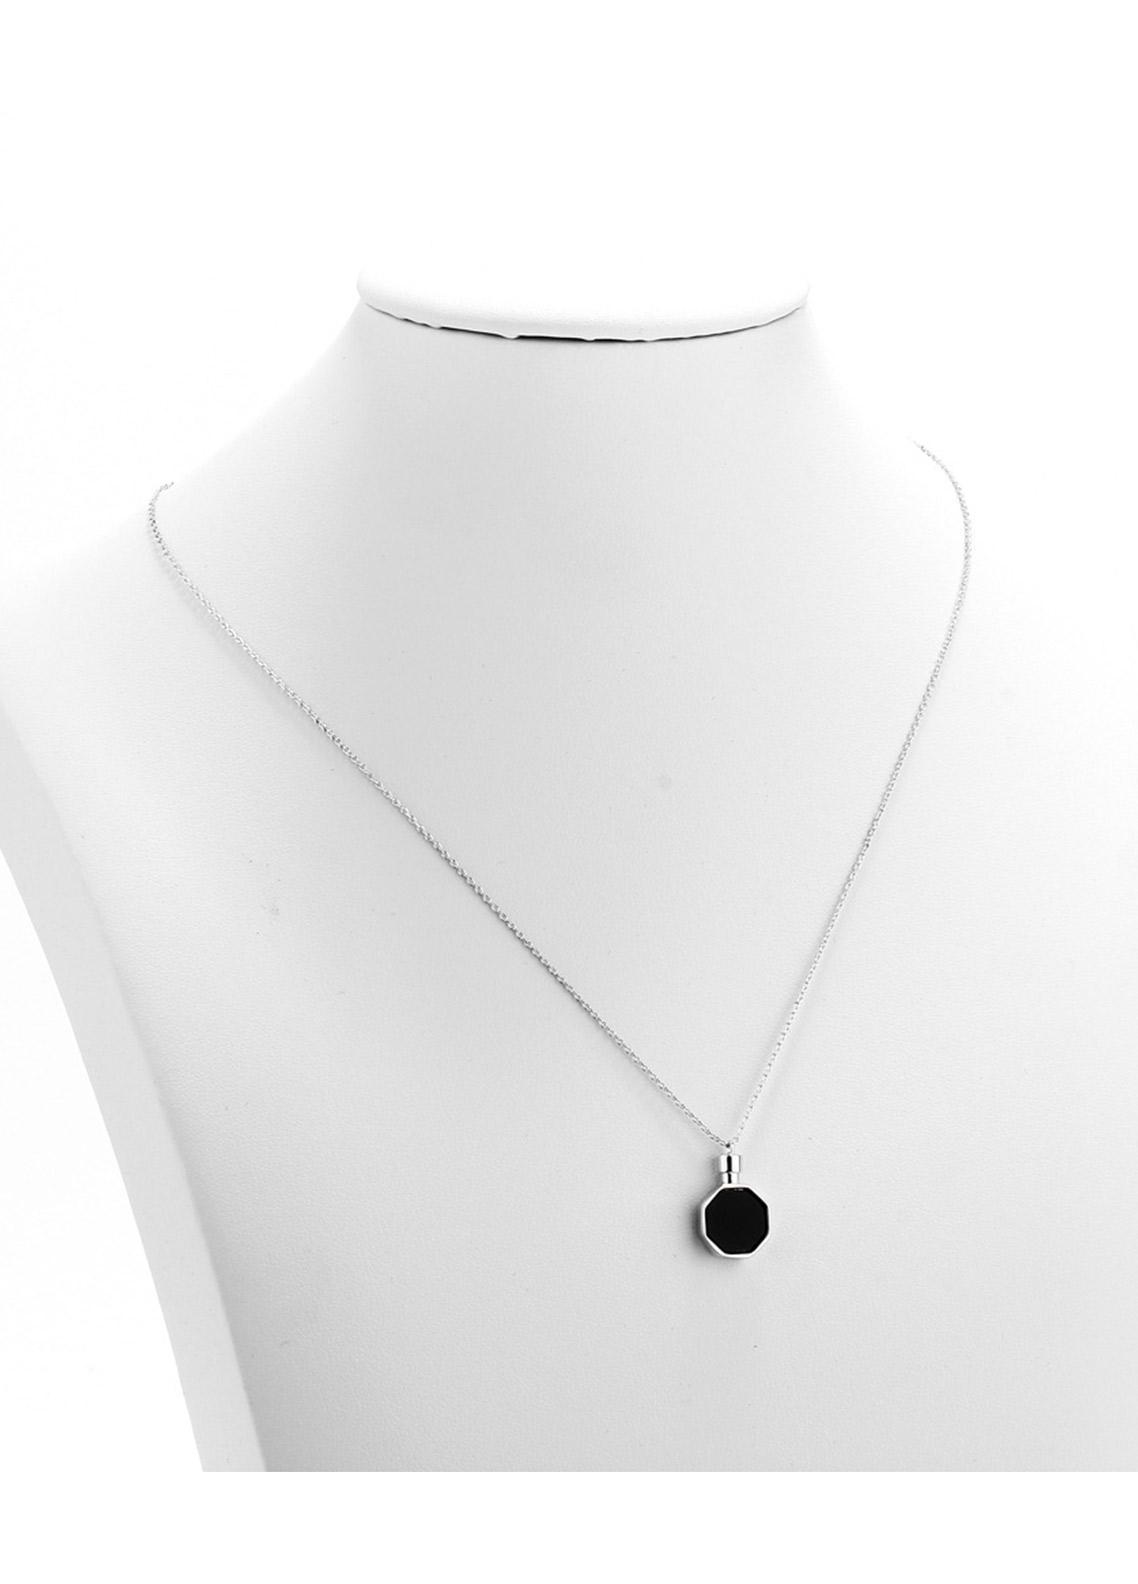 Anna Grace London by Silk Avenue Silver Plated Crystal Stone Tower Necklace AGN0052 - Ladies Jewellery